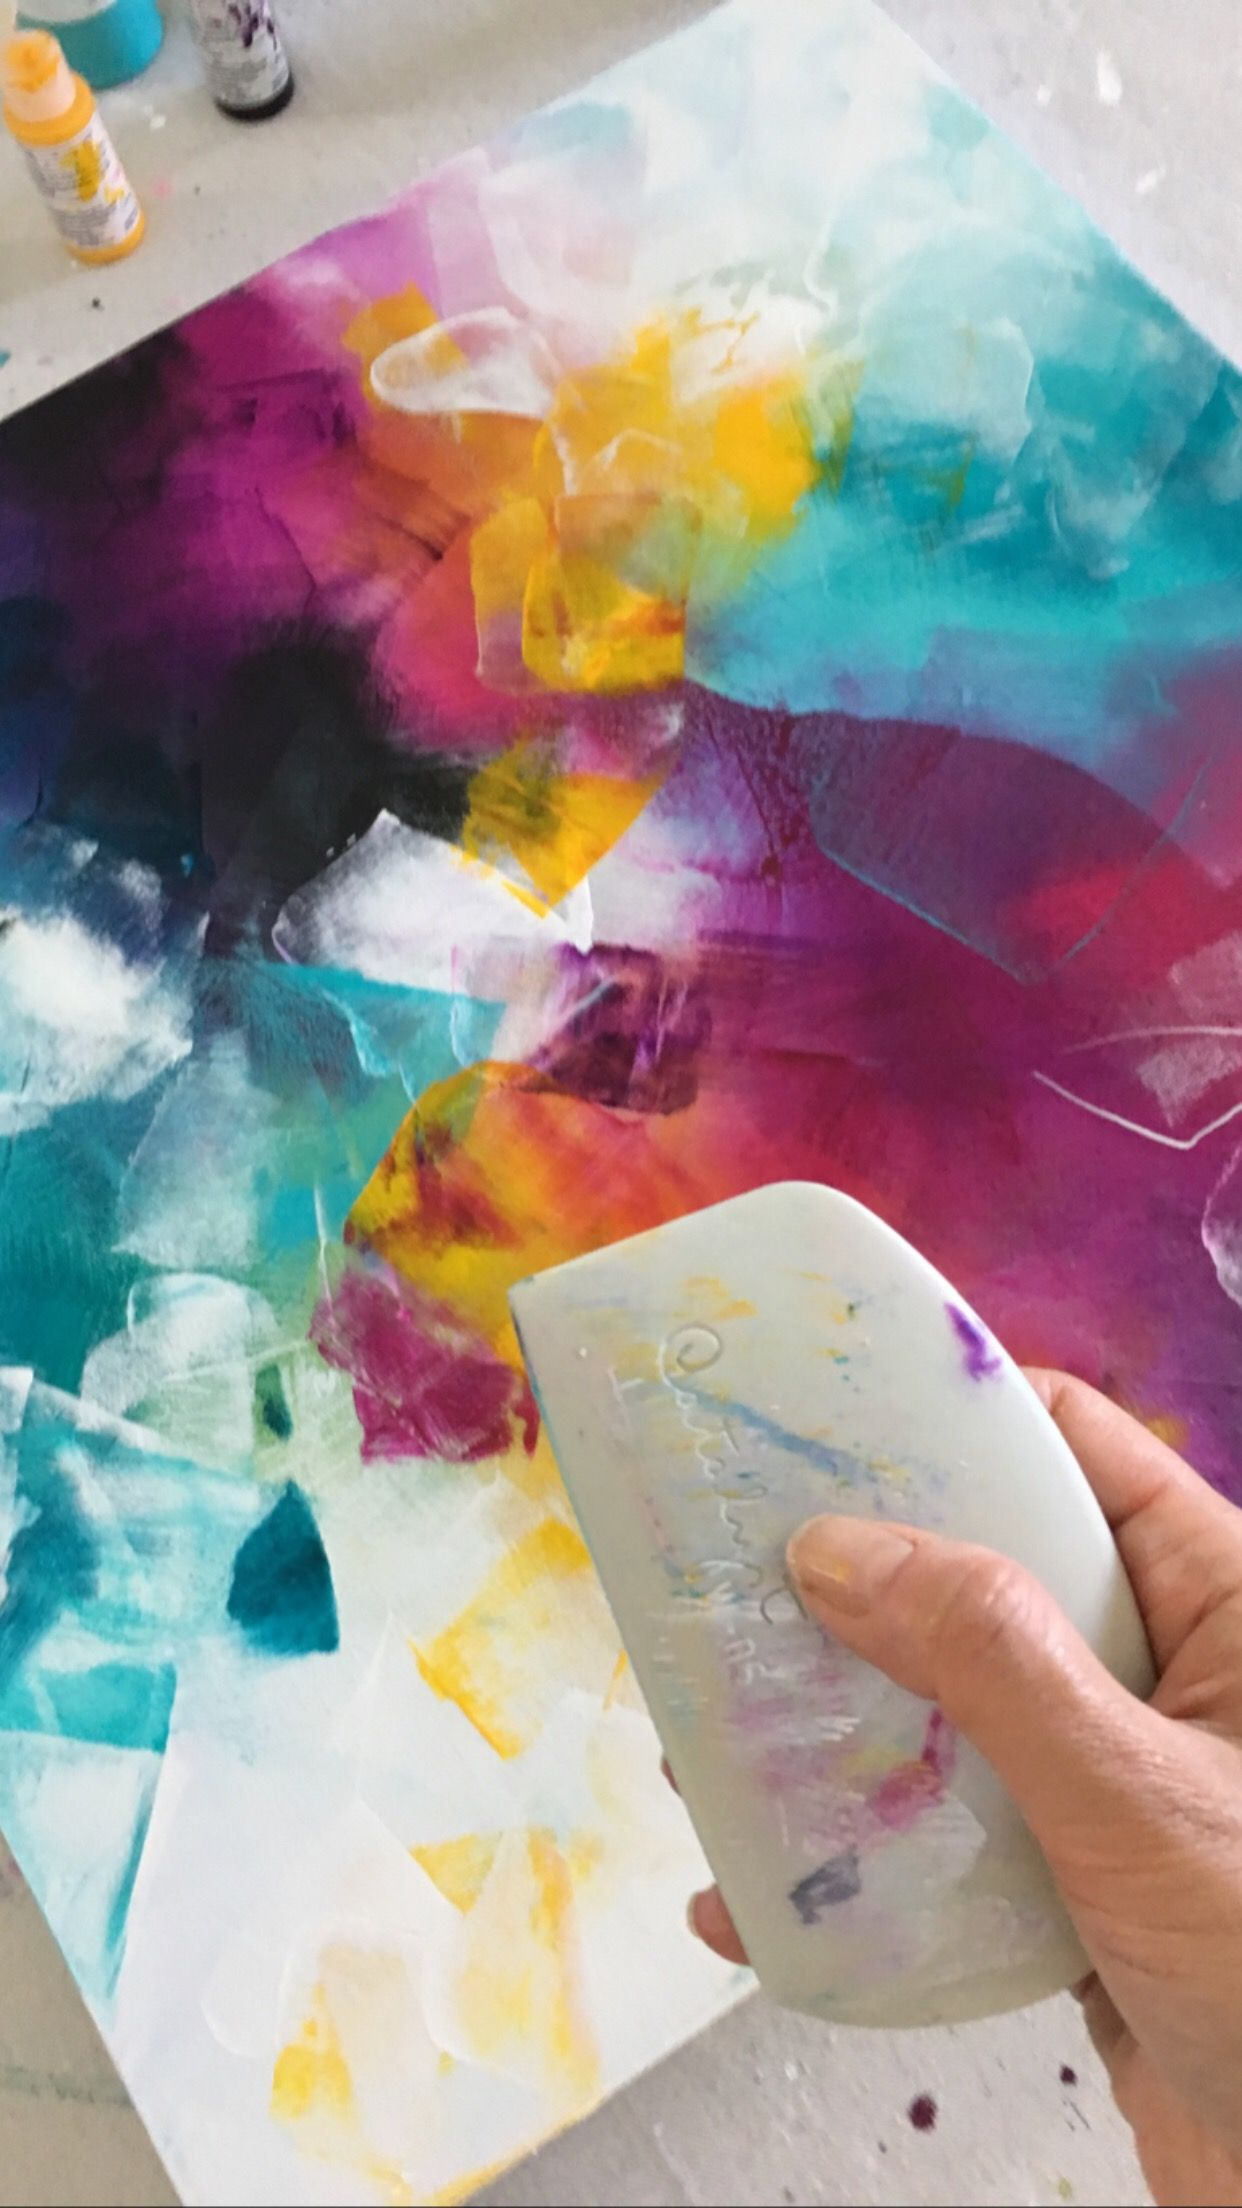 Vibrant Abstract Artwork With Fluid Acrylics And The Catalyst